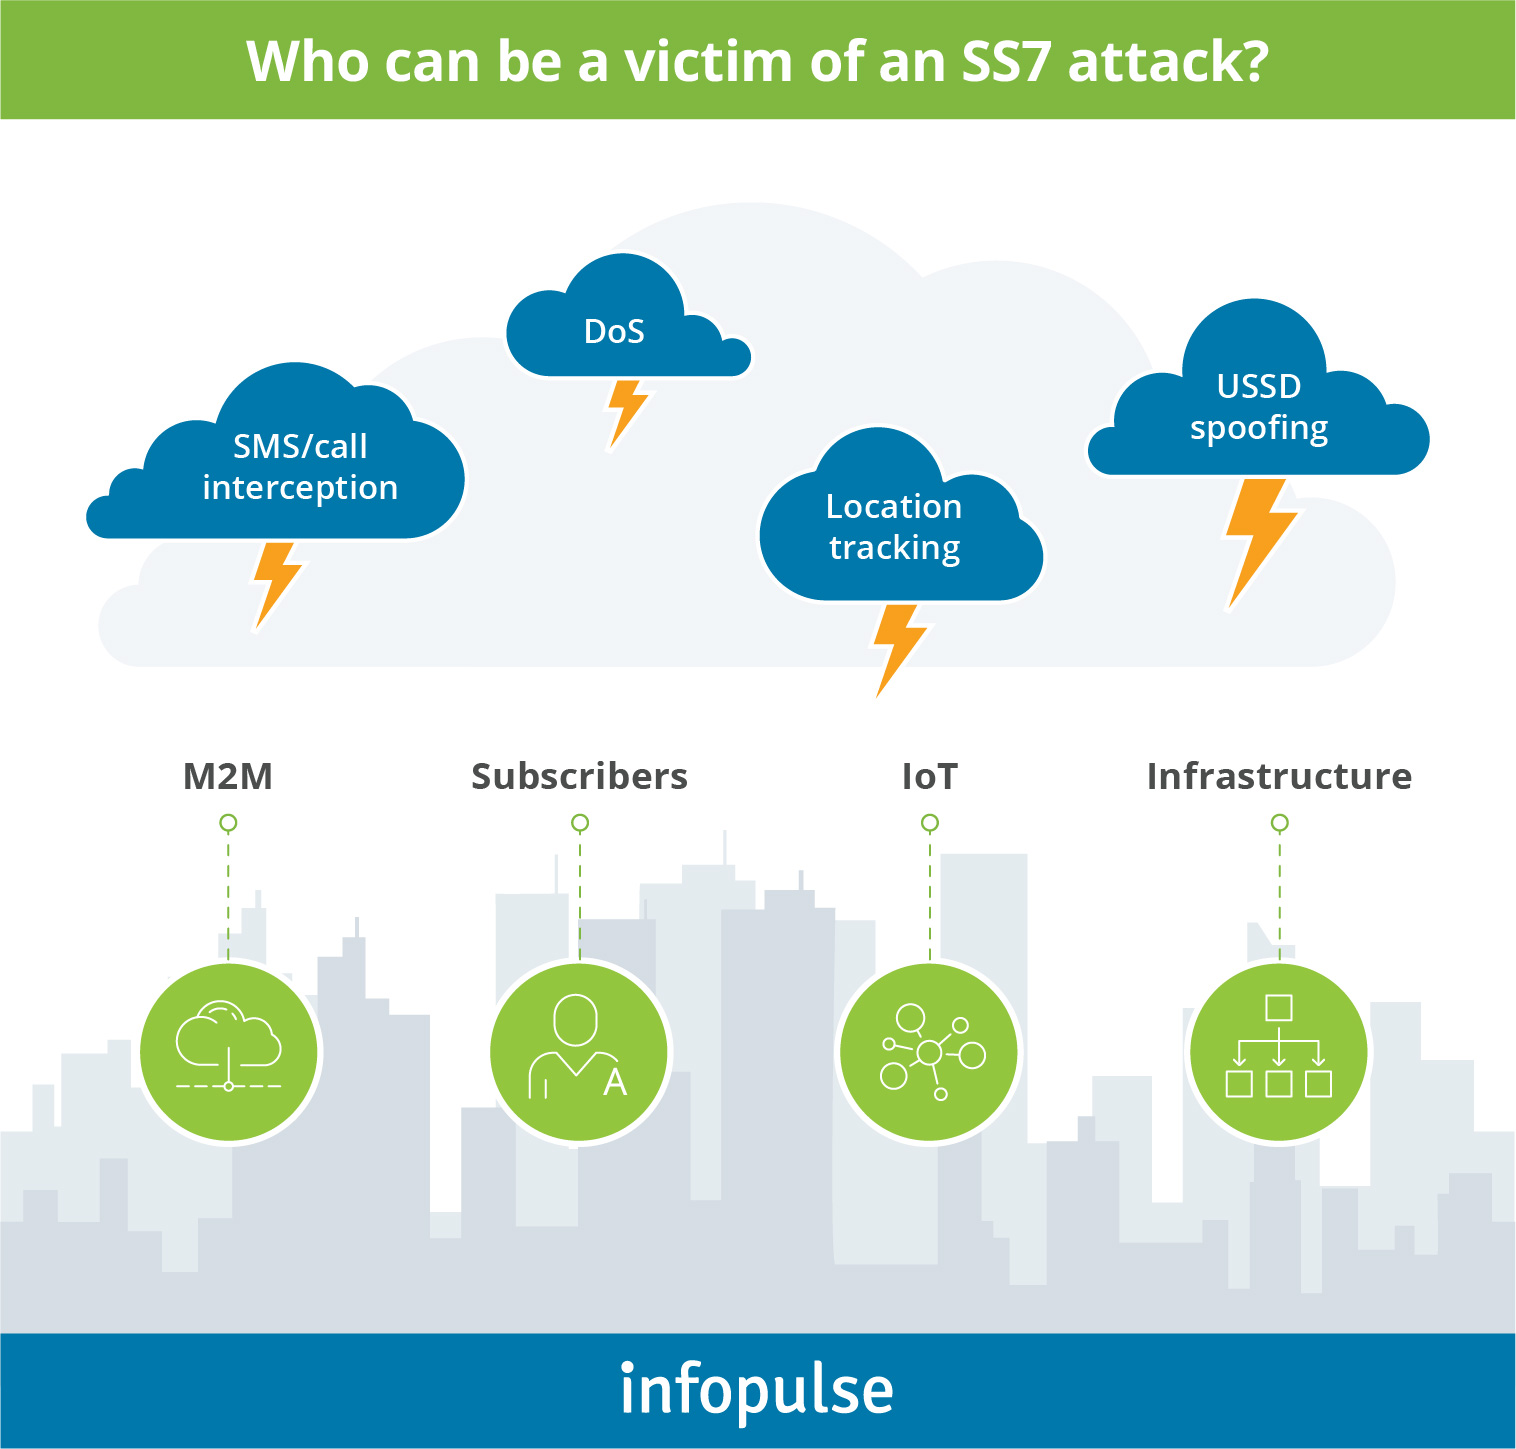 Who can be a victim of an SS7 attack - Infopulse - 5